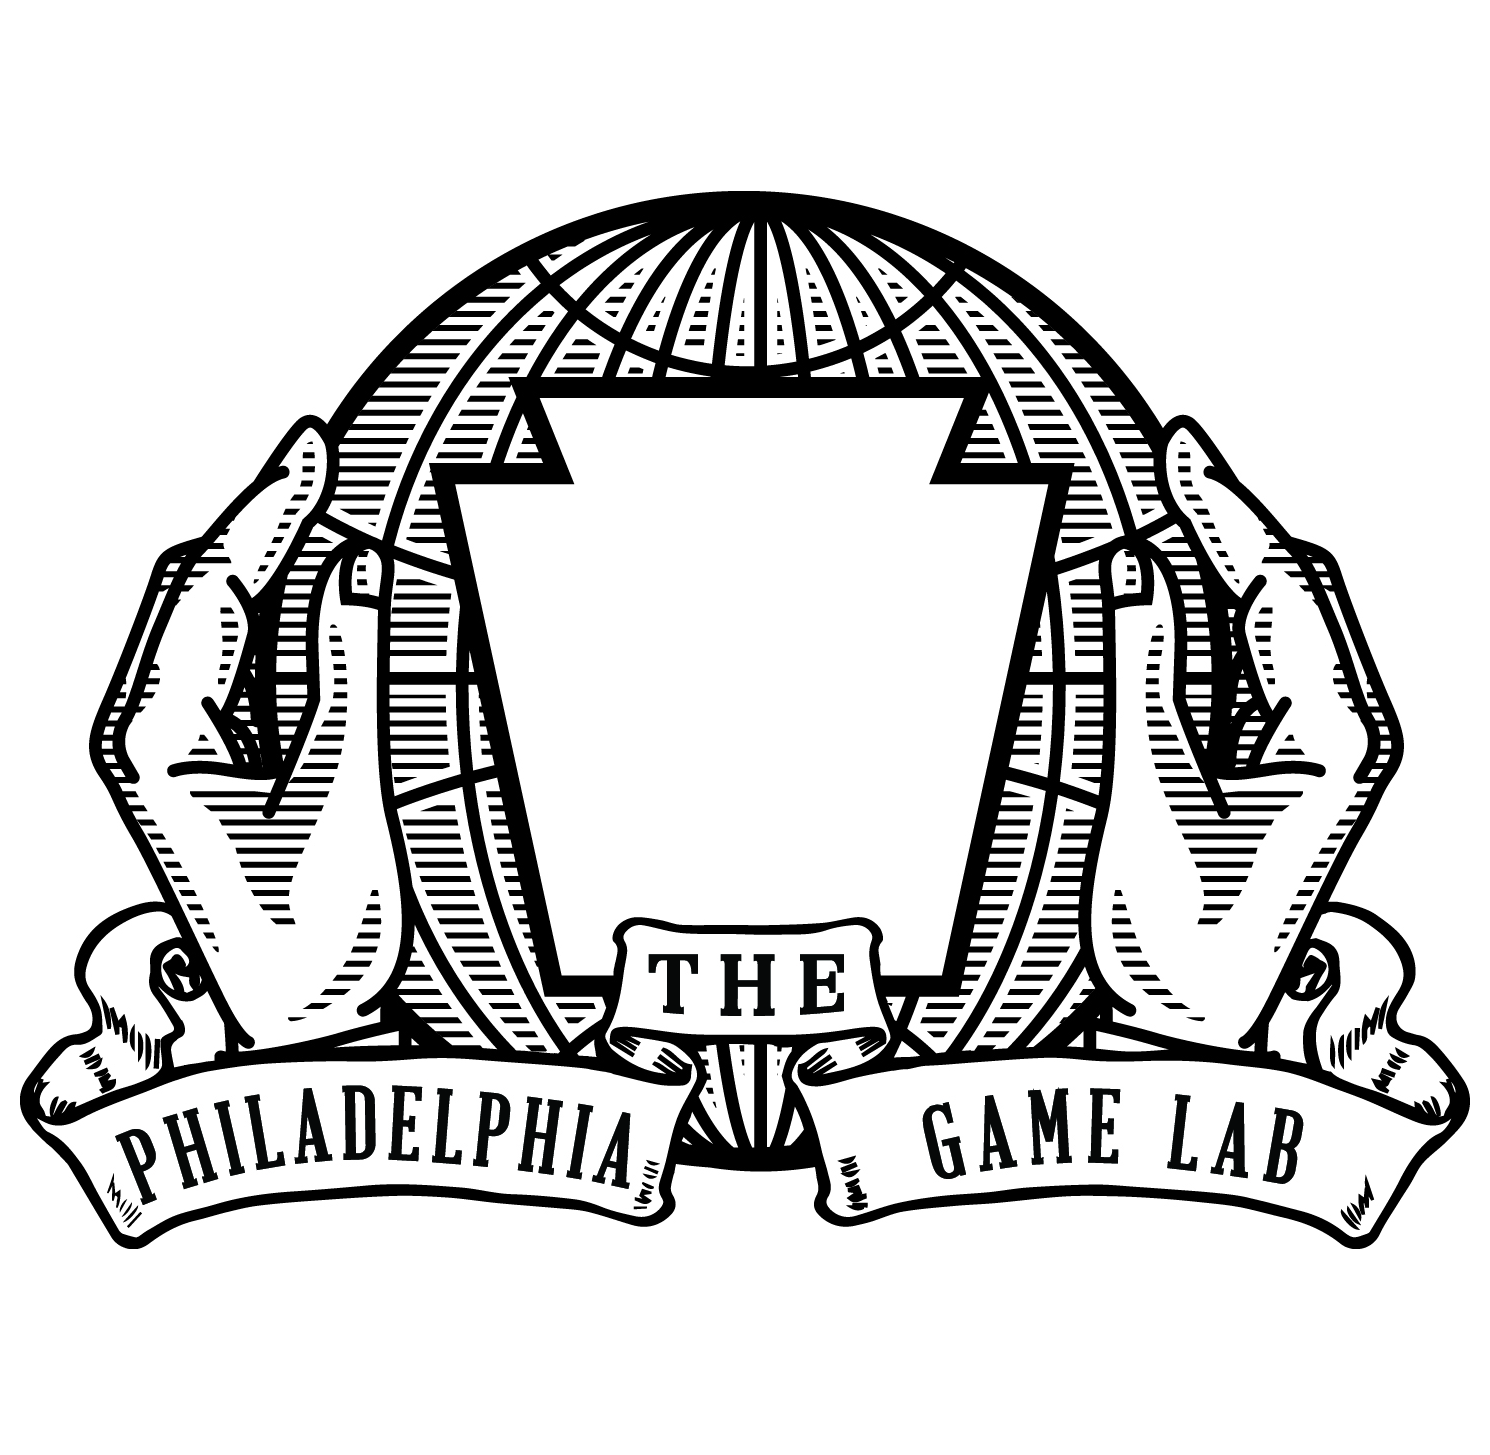 Philadelphia Game Lab